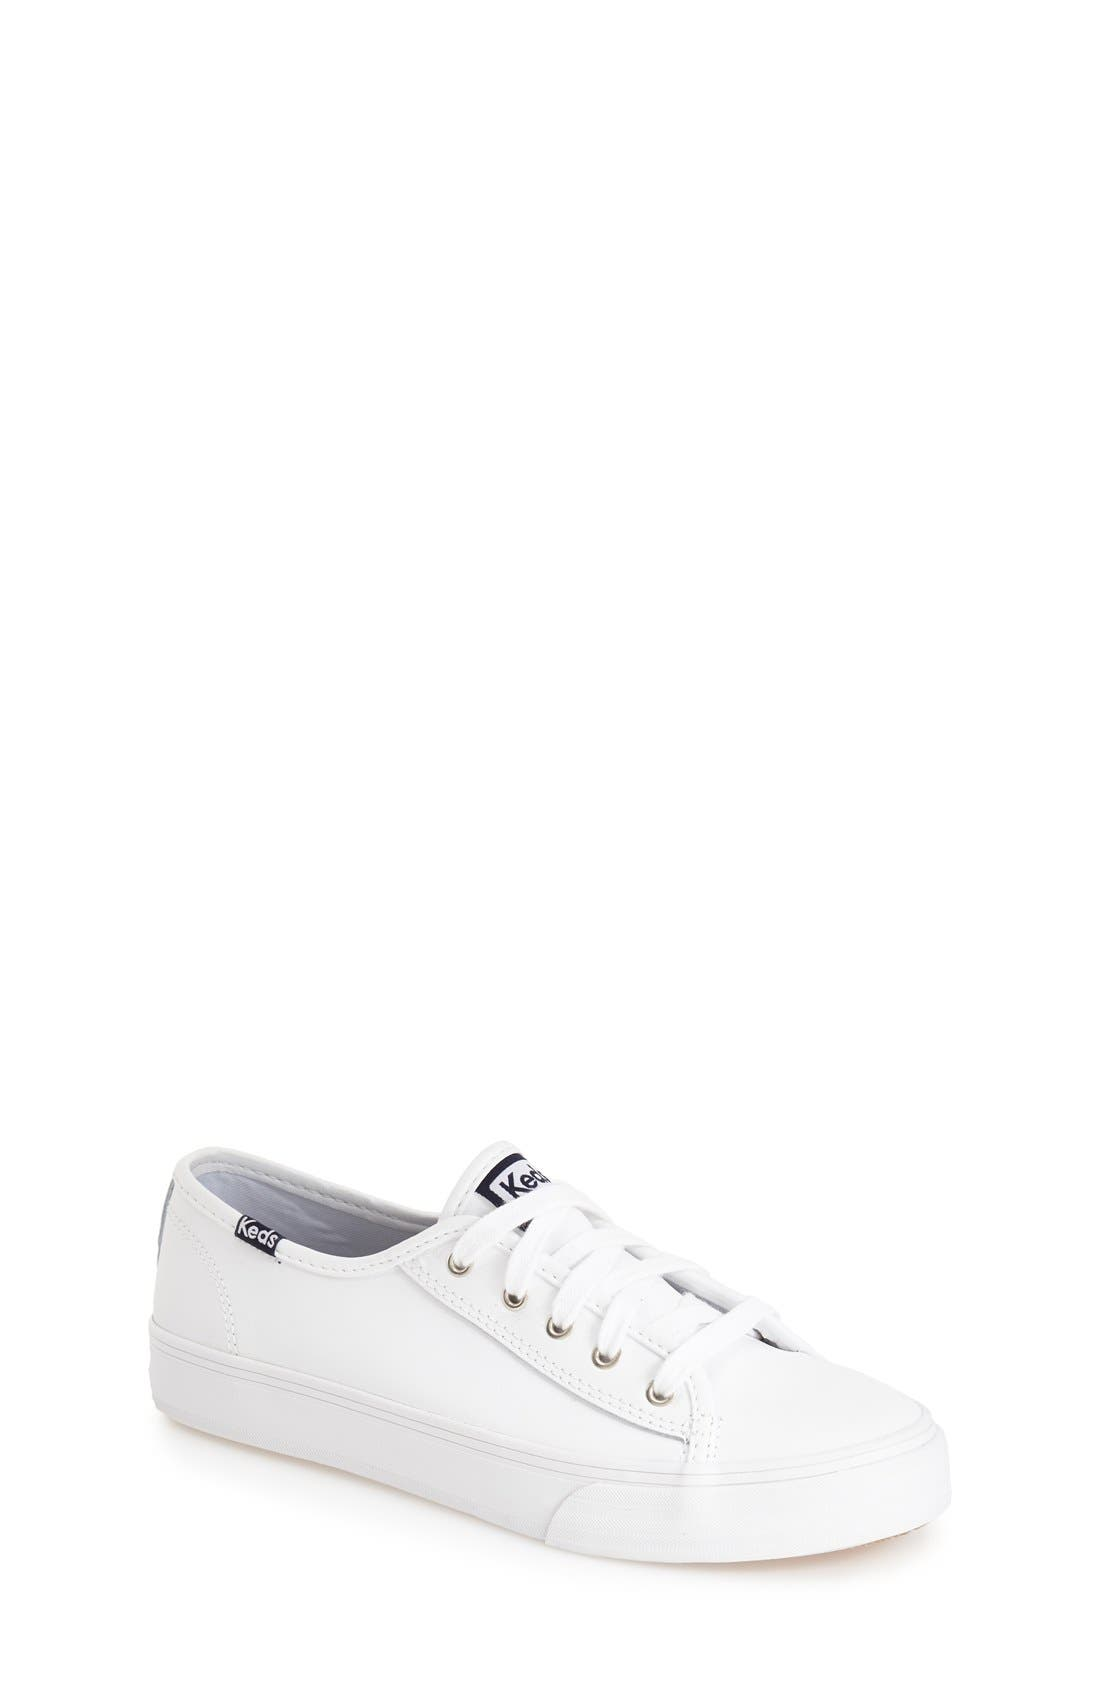 'Double Up' Sneaker,                             Main thumbnail 1, color,                             White